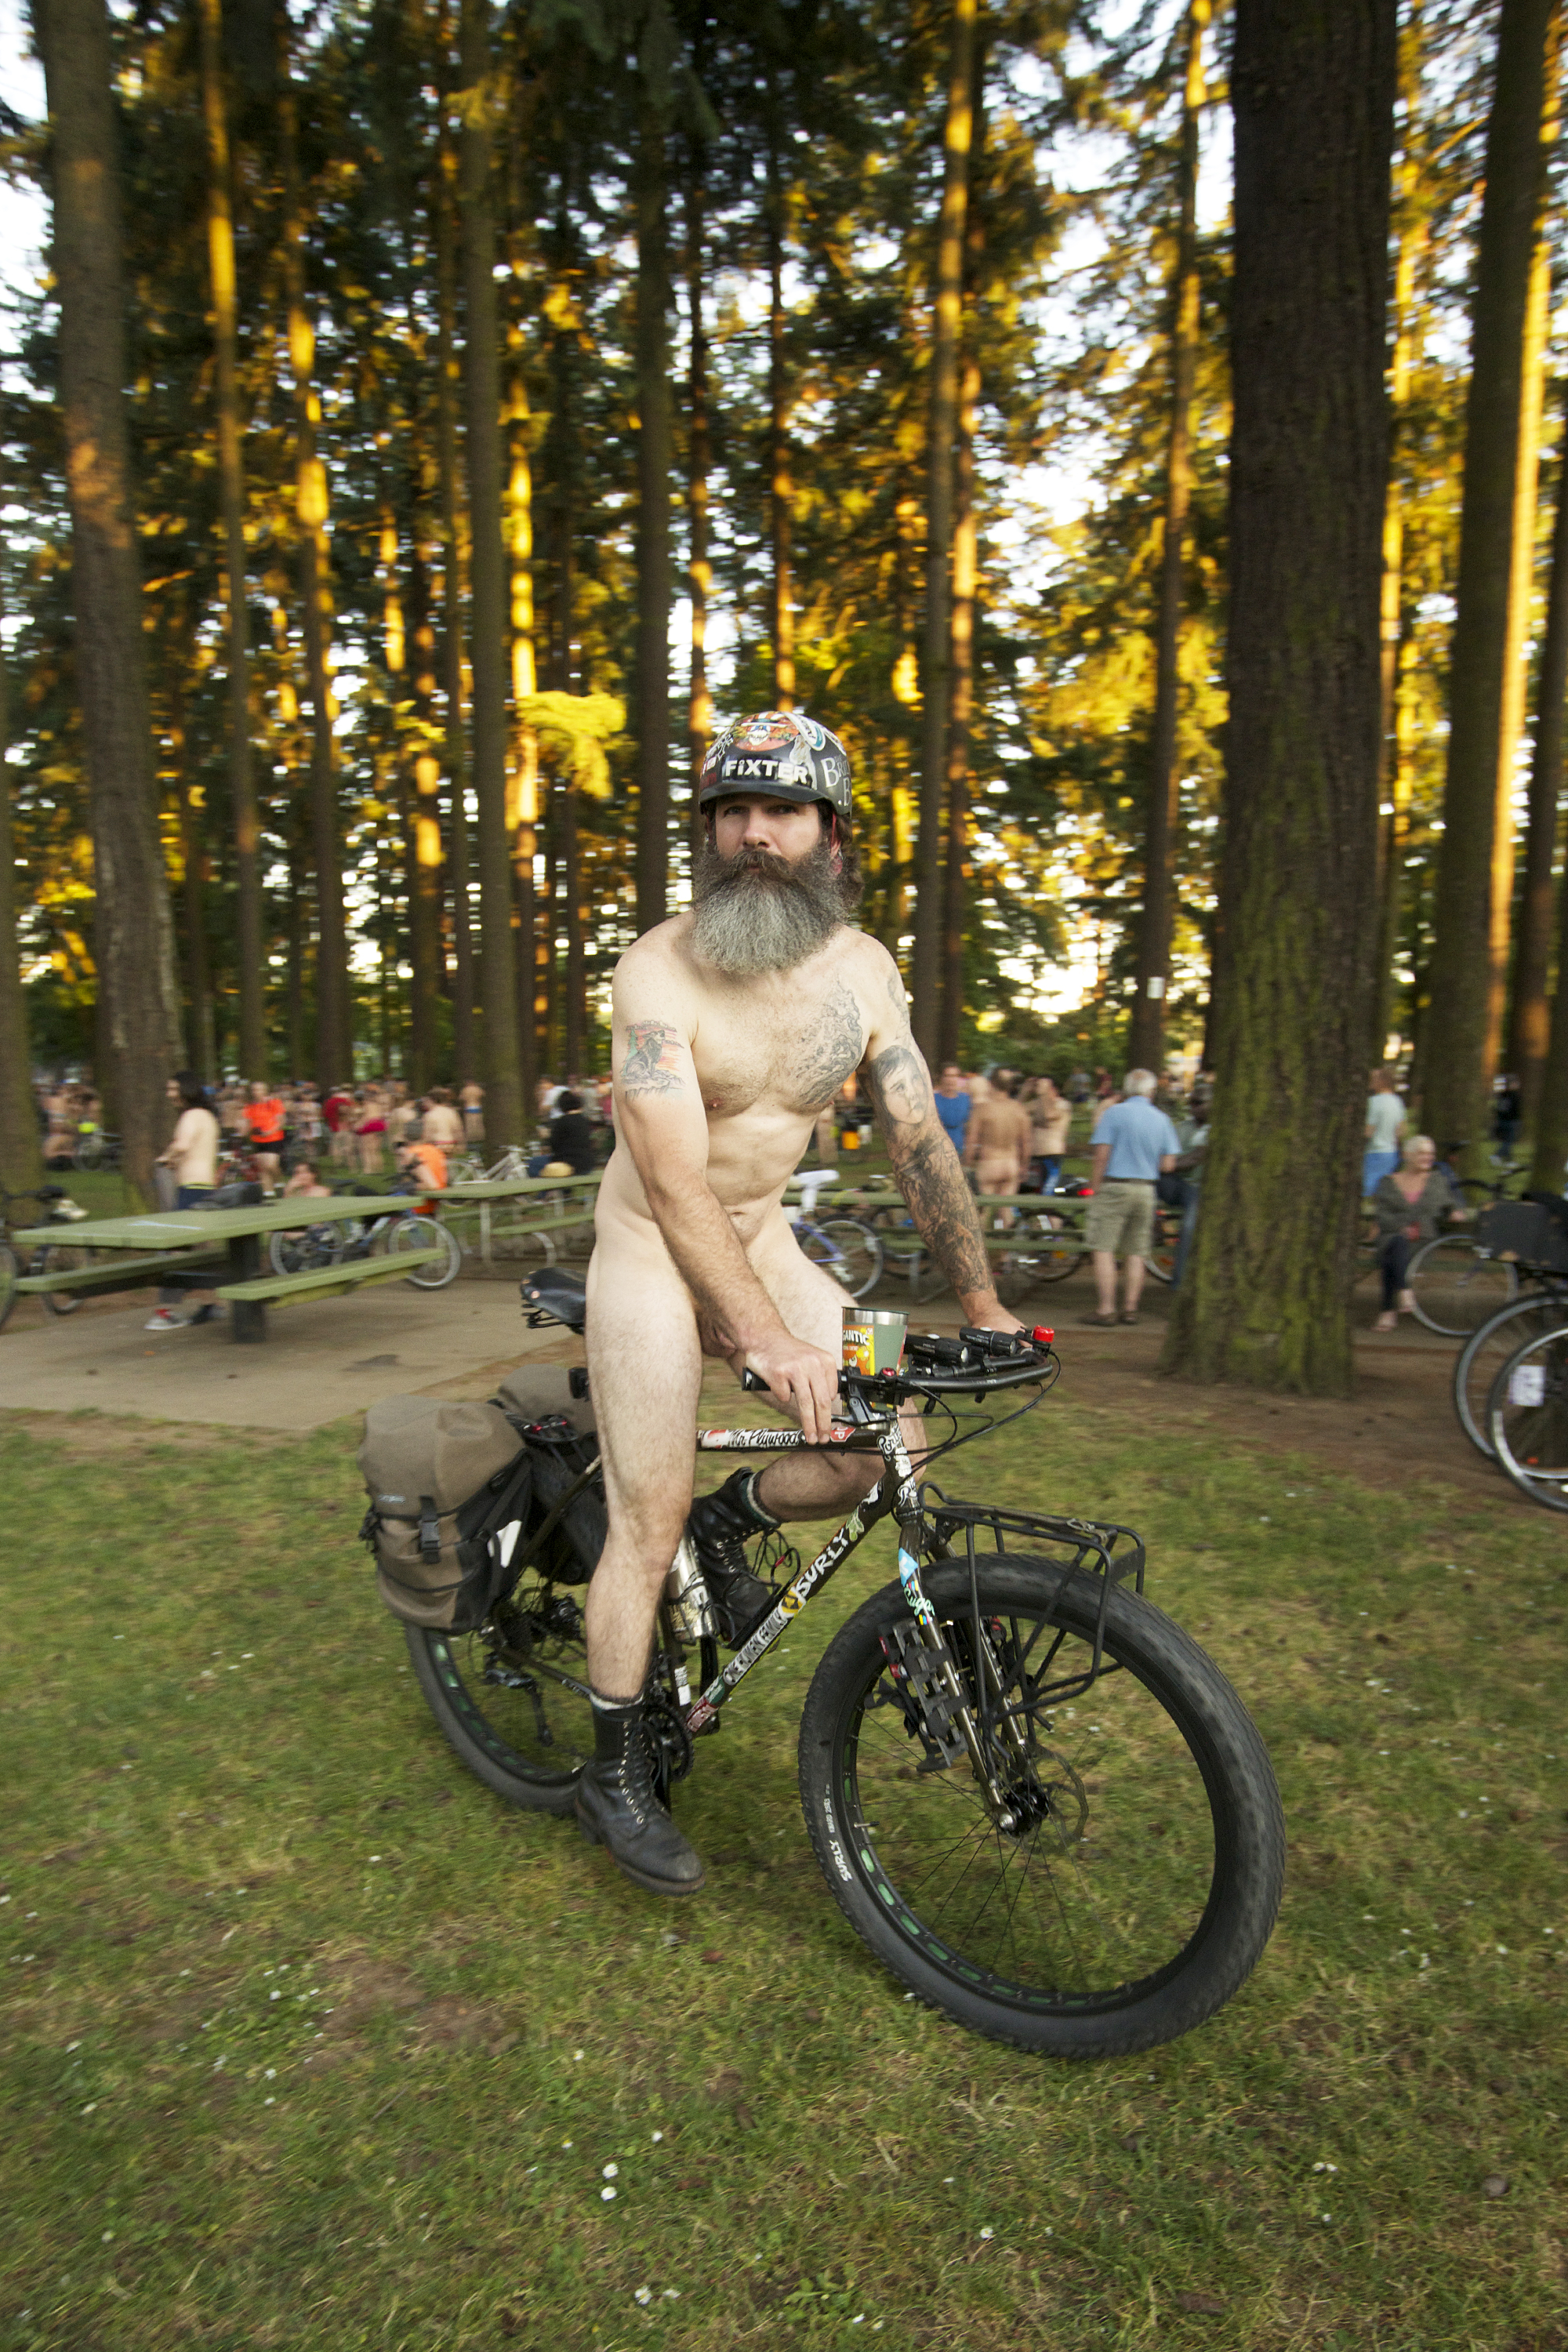 WNBR_WorldNakedBikeRide2016_JeffWalls_DSC4195